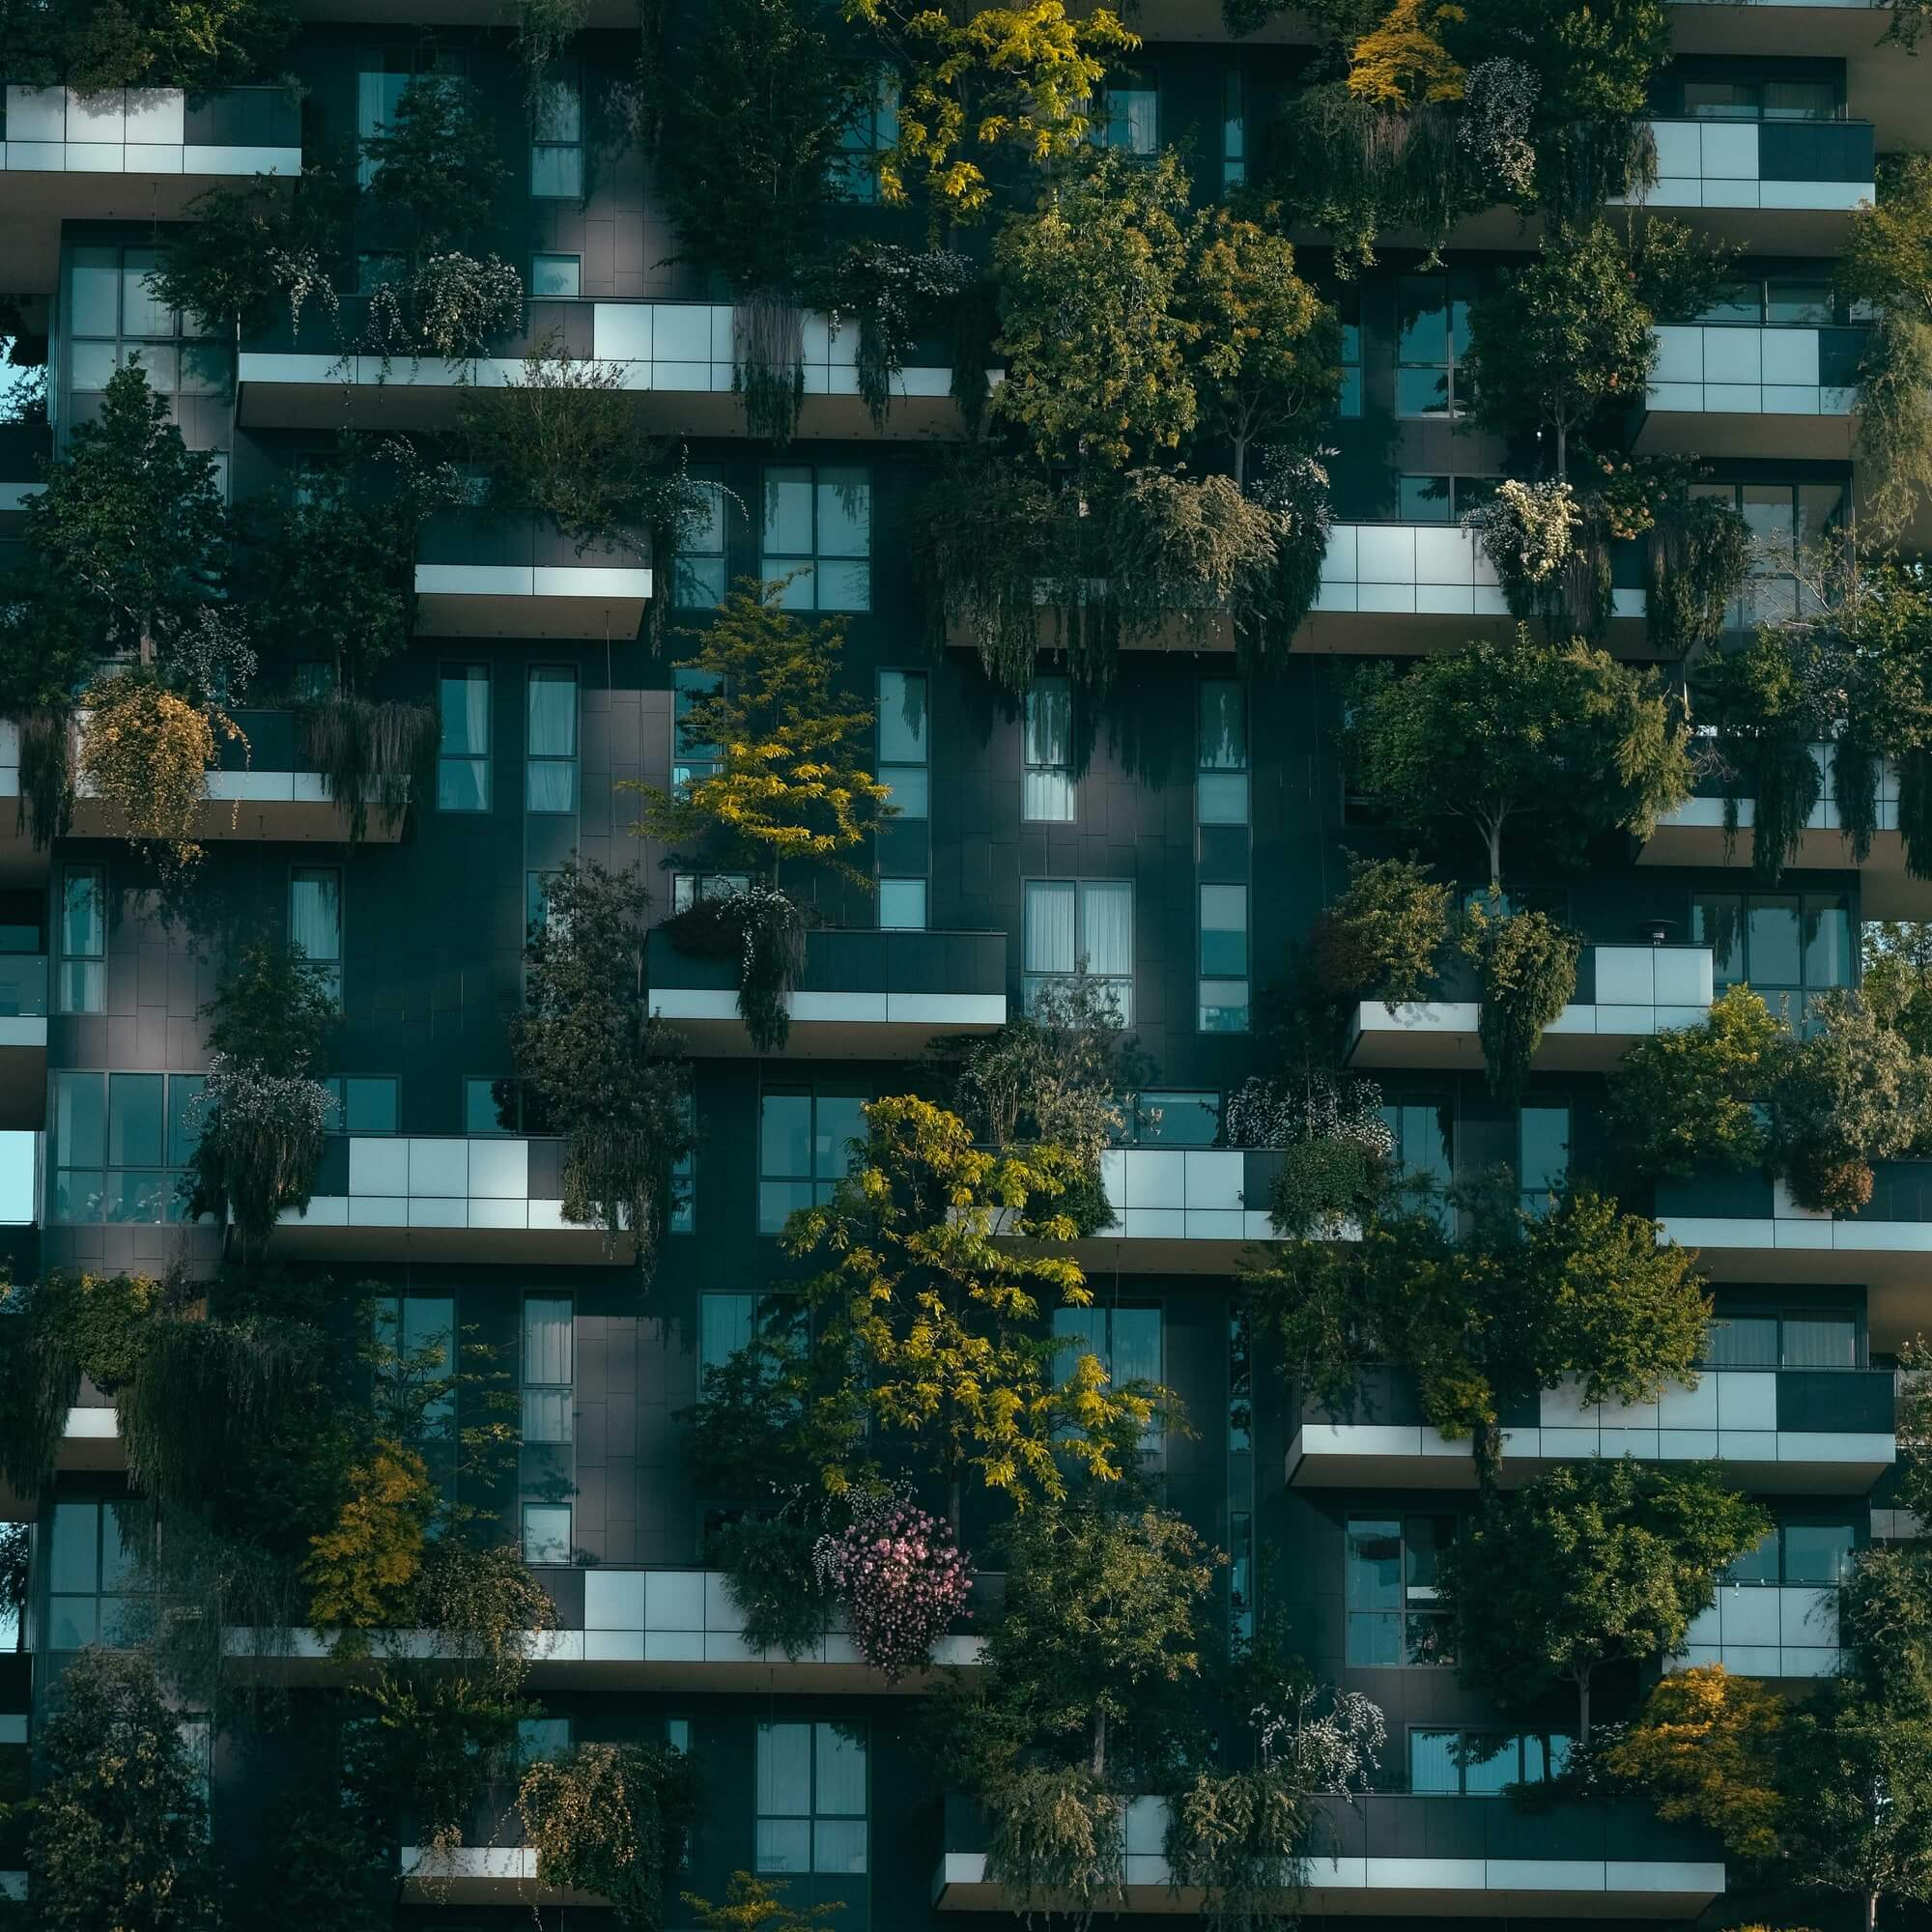 Apartment block with plants and trees growing on balconies.